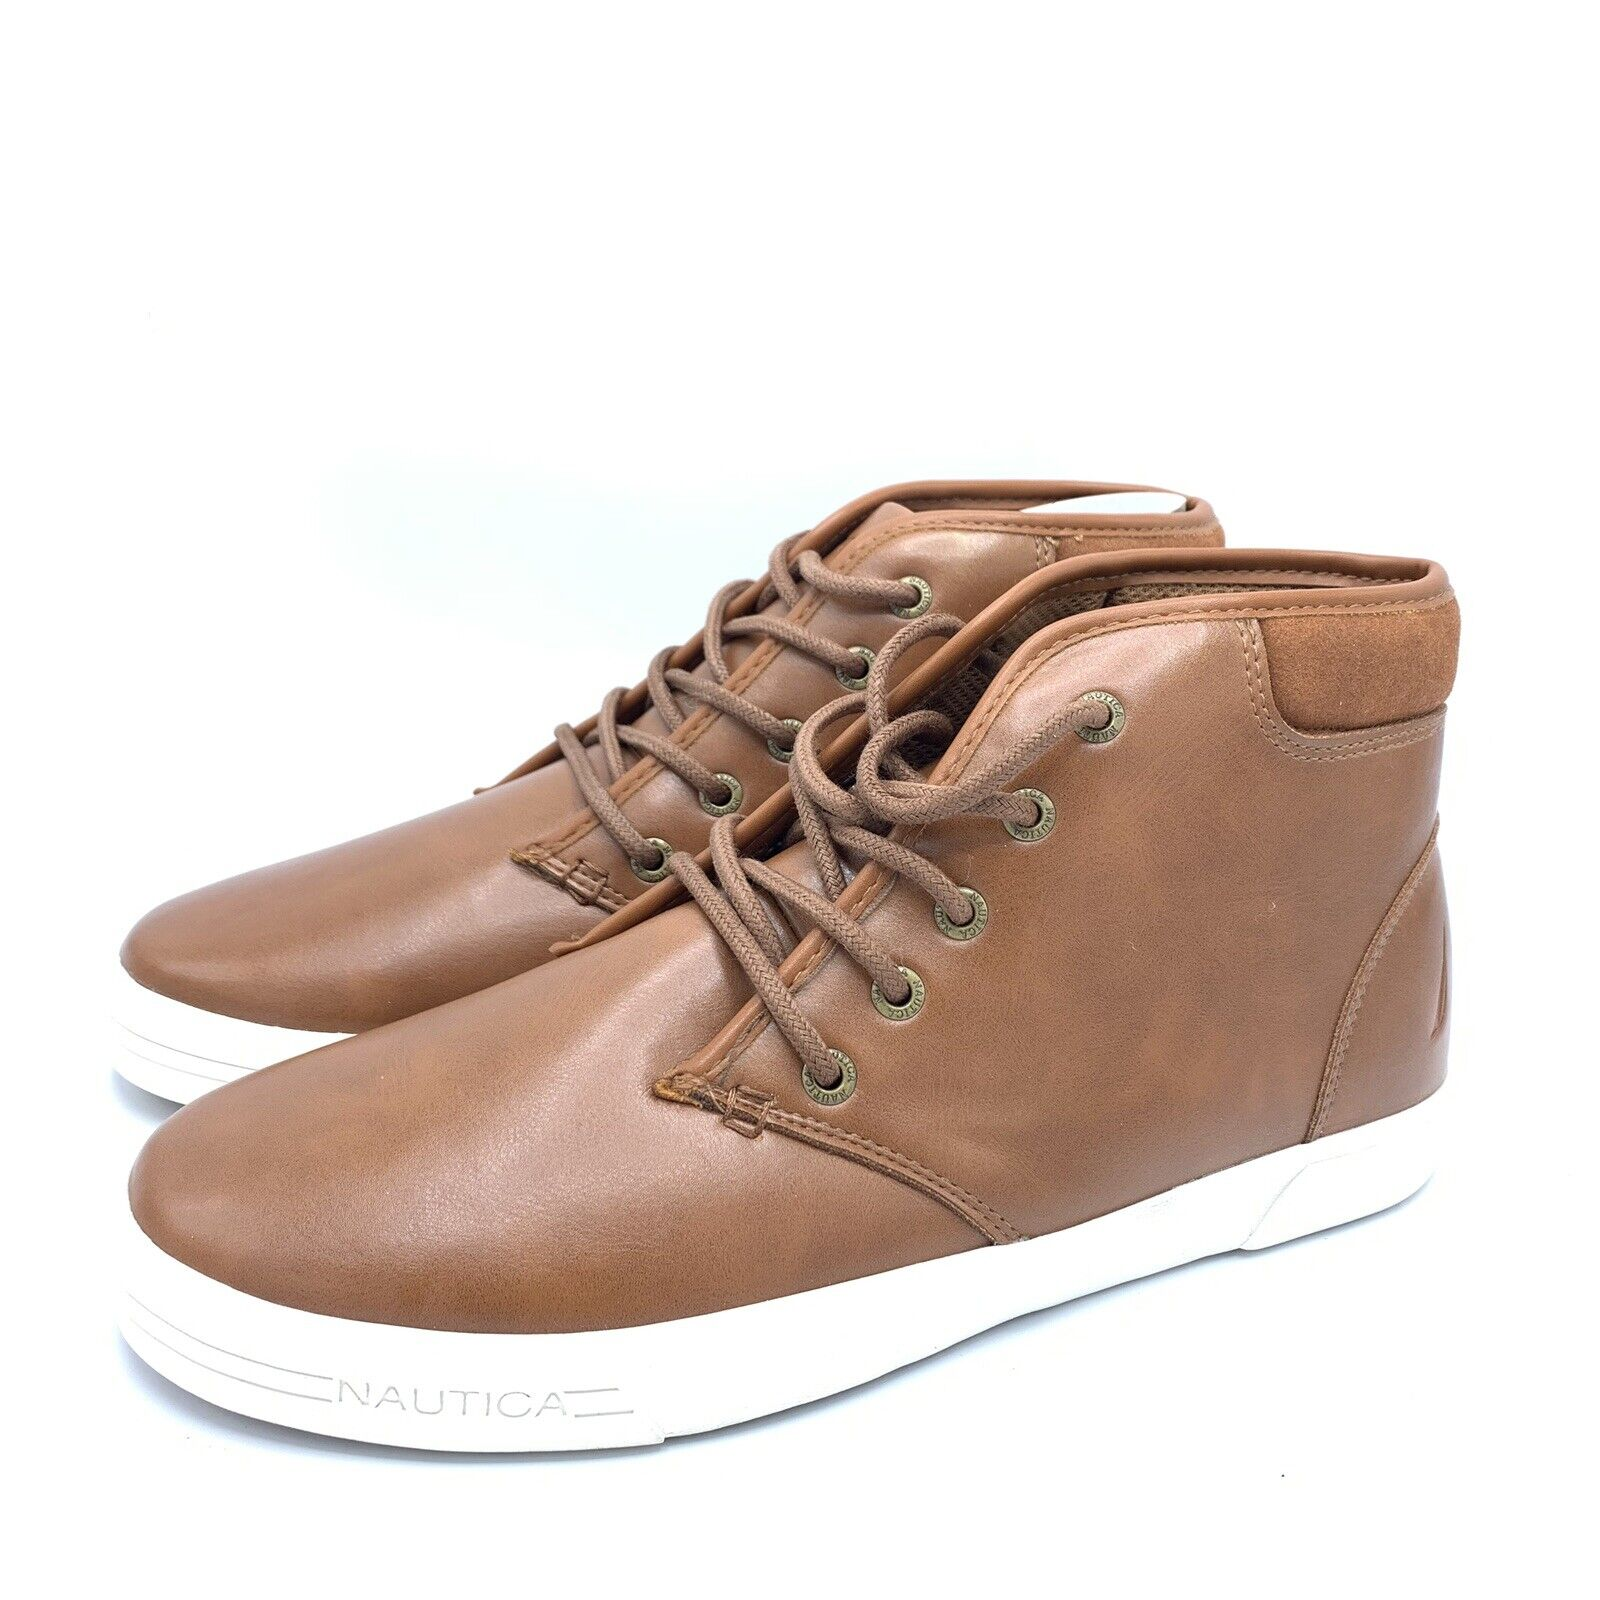 75 NAUTICA Mens Brown Leather Breakwater Sneakers Casual Lace Up shoes Size 9.5